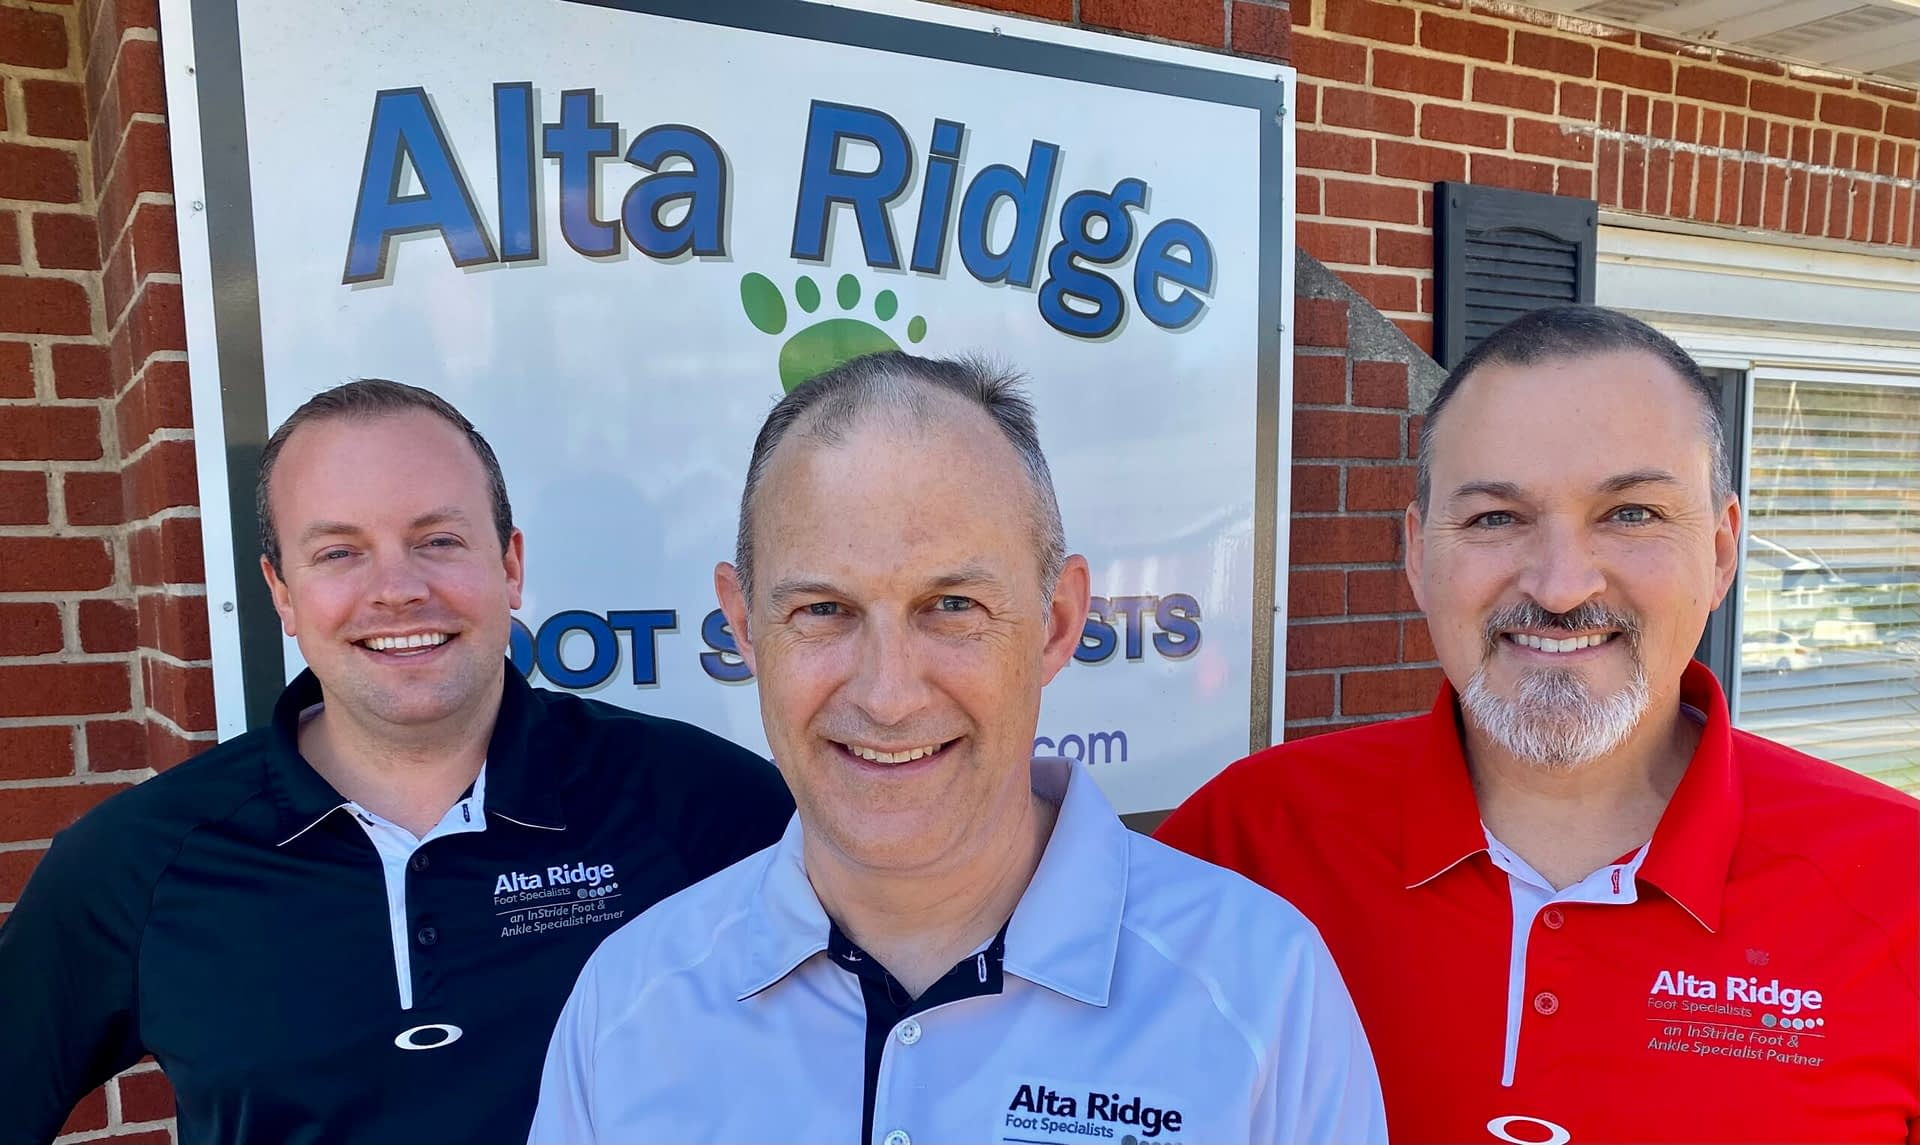 Welcome to Alta Ridge Foot Specialists!